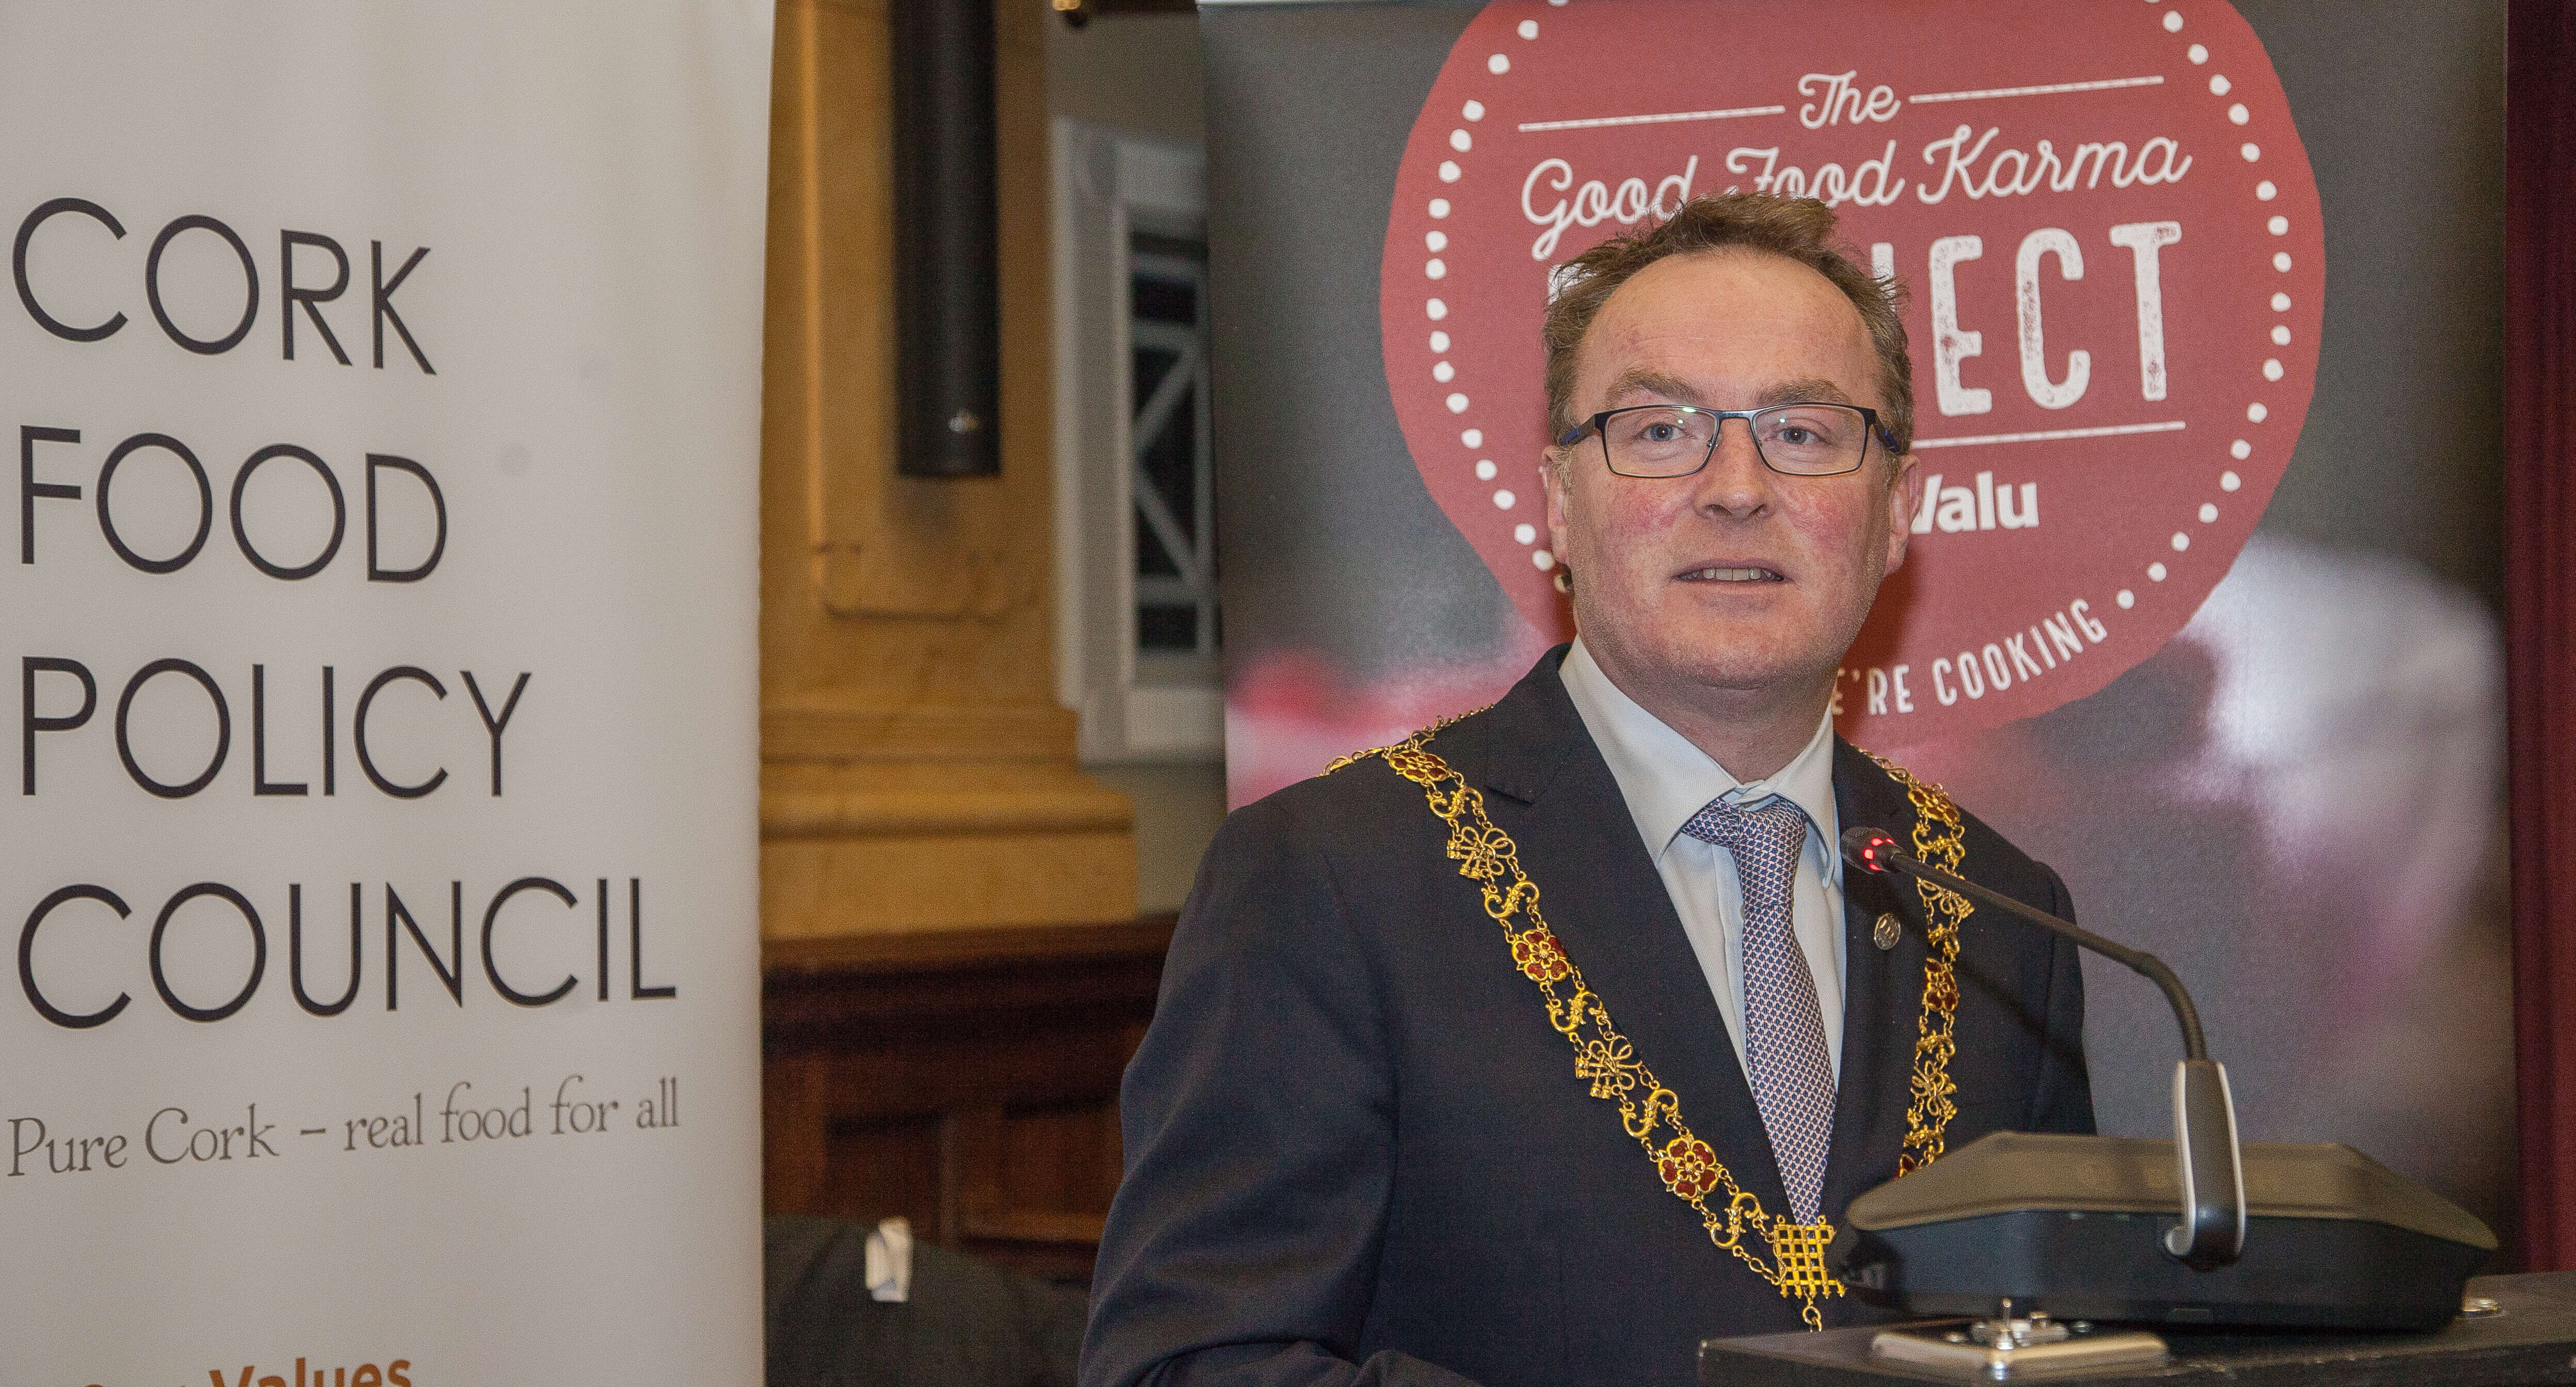 Lord Mayor of Cork Cllr. Des Cahill